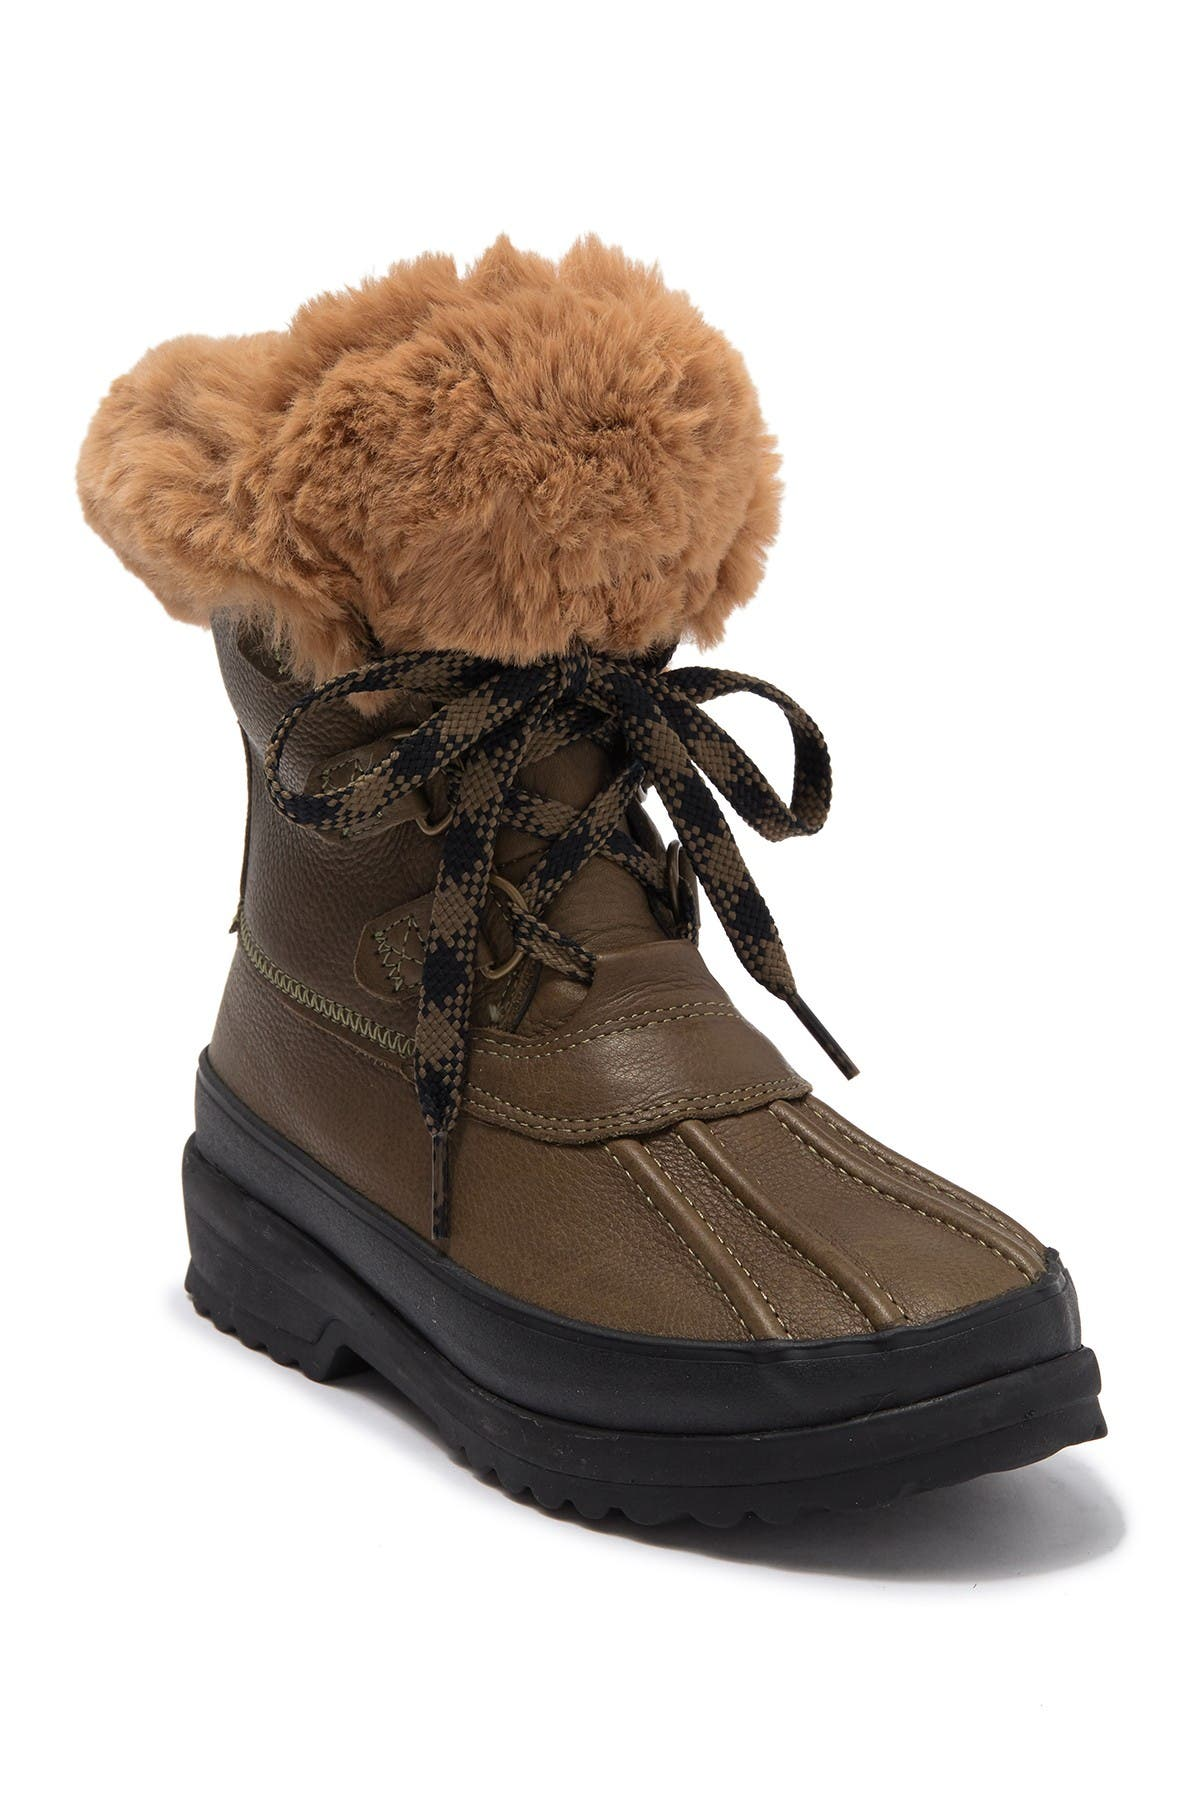 Image of Sperry Maritime Faux Fur Lined Winter Duck Boot